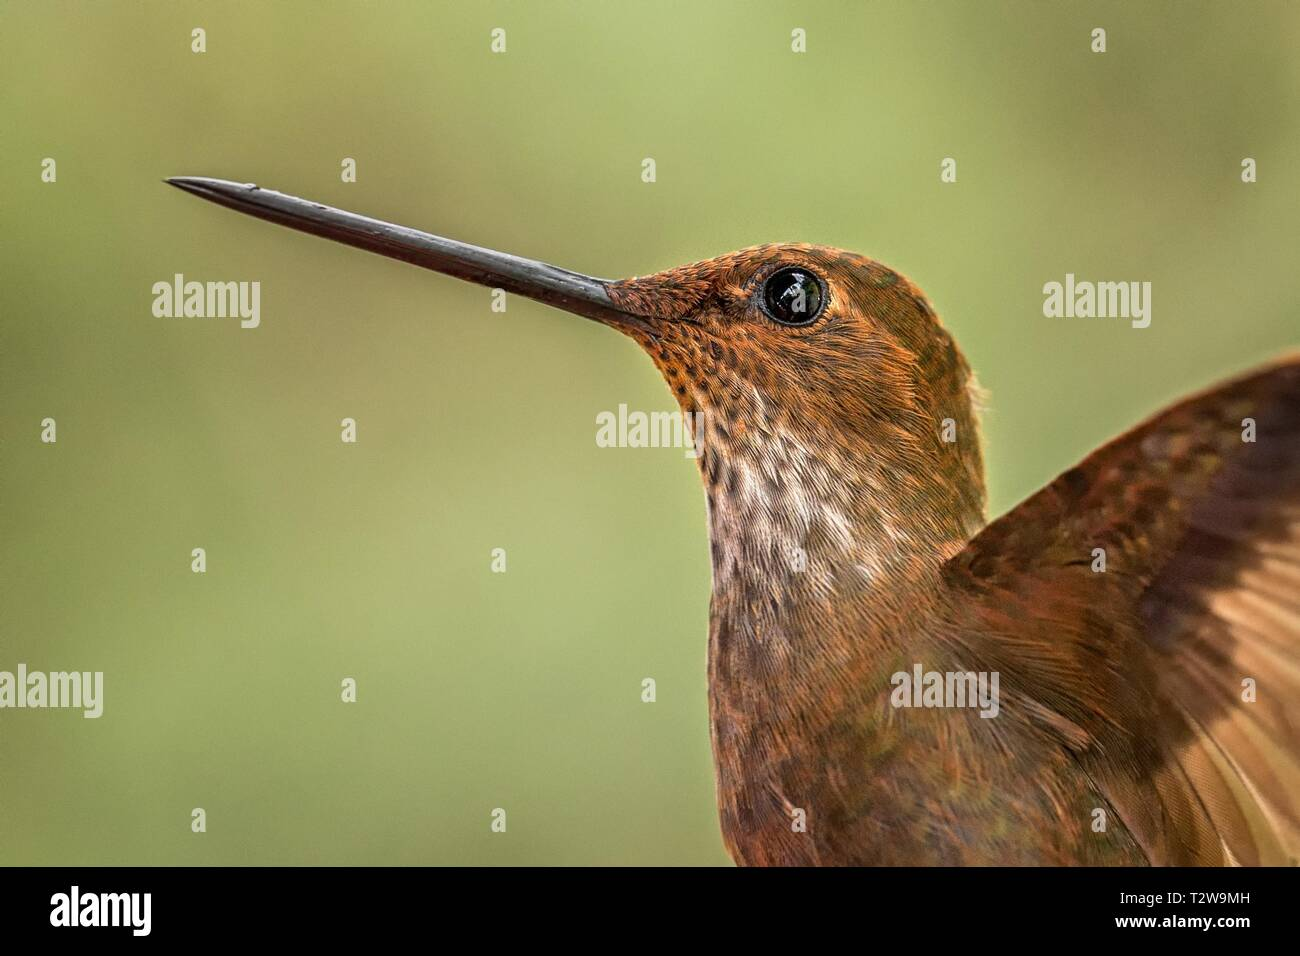 Bronzy inca, hummingbird from tropical forest,Colombia,close up bird portrait,clear colorful background,nature,wildlife, exotic birding adventure Stock Photo